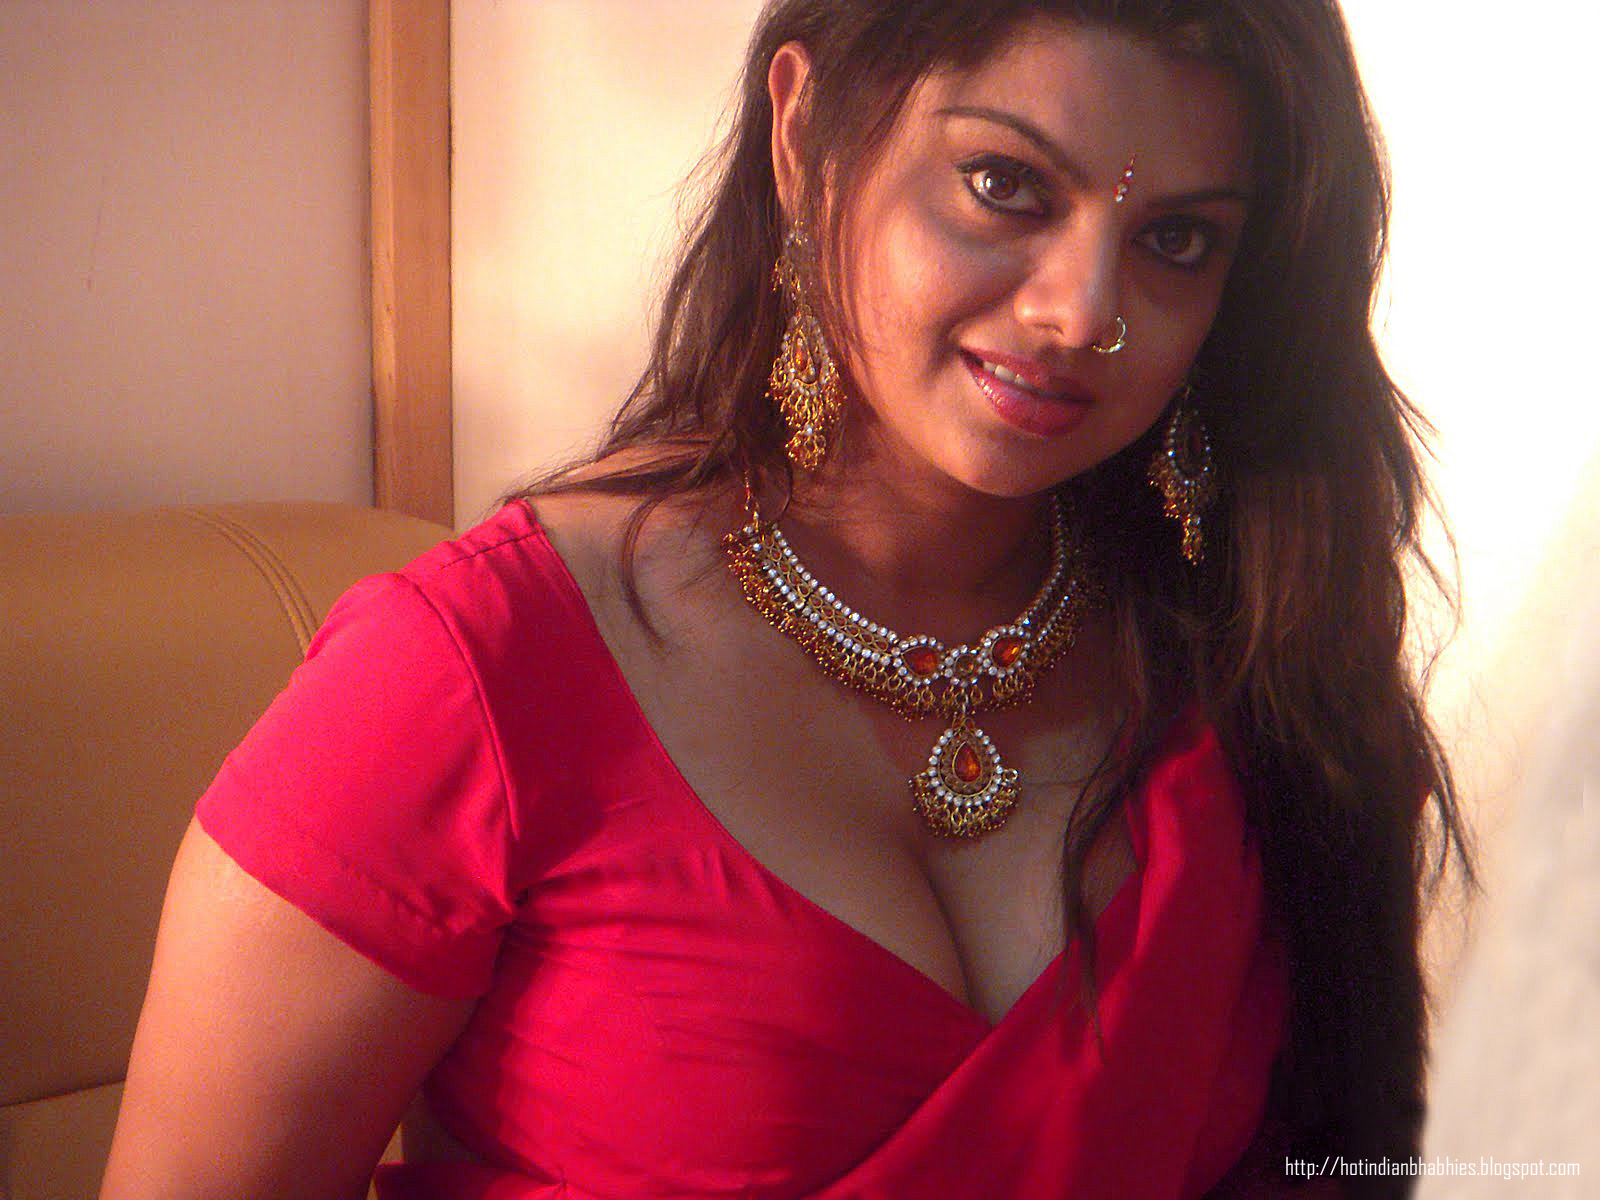 1 Swathi Varma Hot Photo gallery arabic tamil indian sexy babes house wife sex pictures bed room pictures nude pisture sari pictures big boobs tits pictures indian tamil big ass hot bikini videos big tit mature